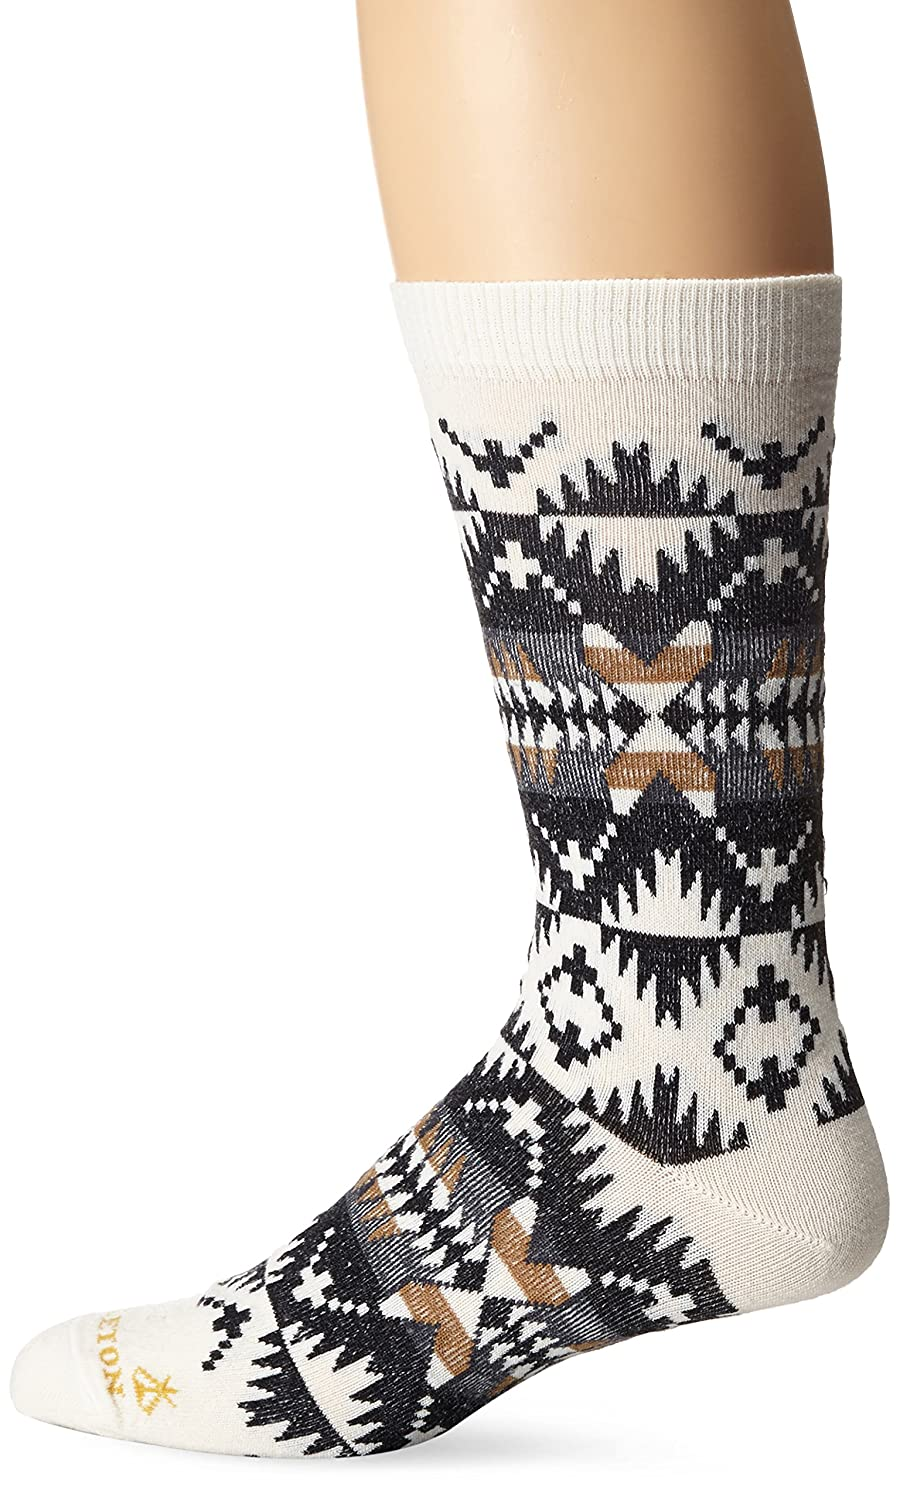 Pendleton Men's Spider Rock Crew Socks, Grey, Large(9-12) McCubbin Hoisery 6437-M